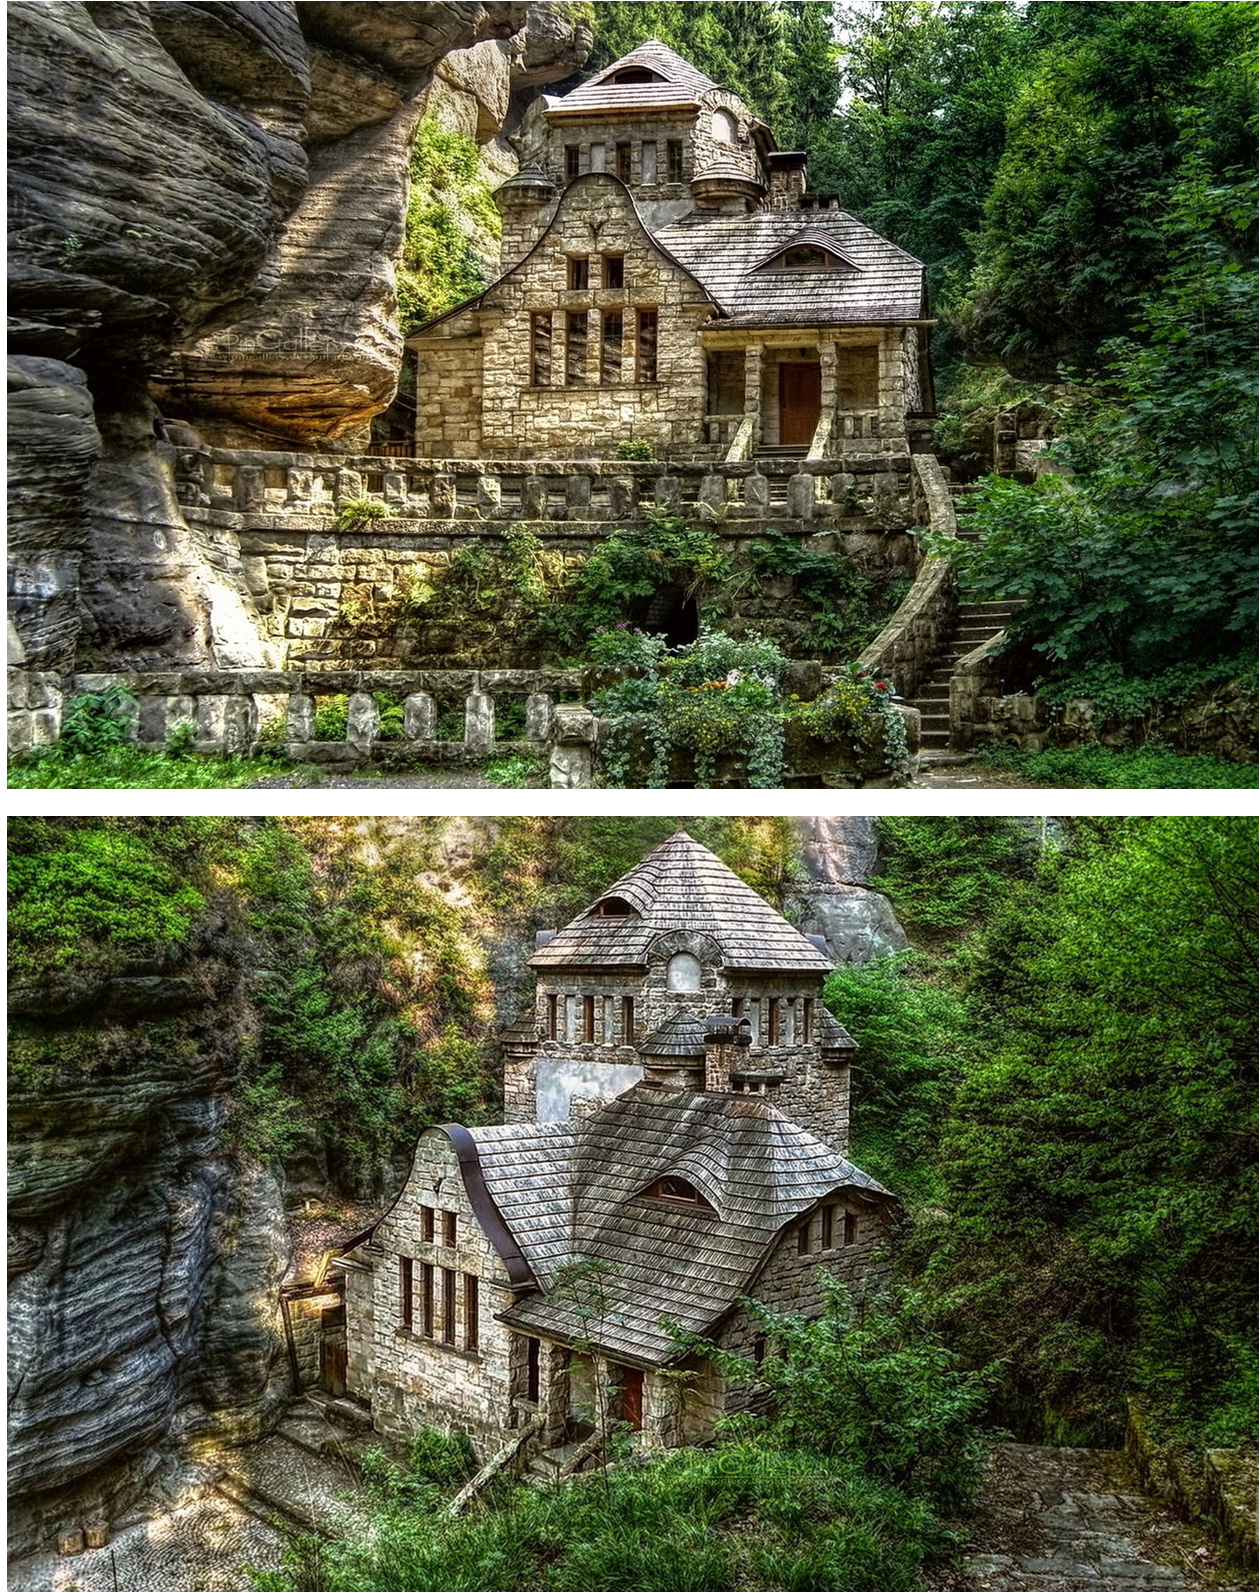 Cliffside House Ideas That Will Bring Out Your Inner Creativity - Creative redeisgn turning stone cottage modern country home england